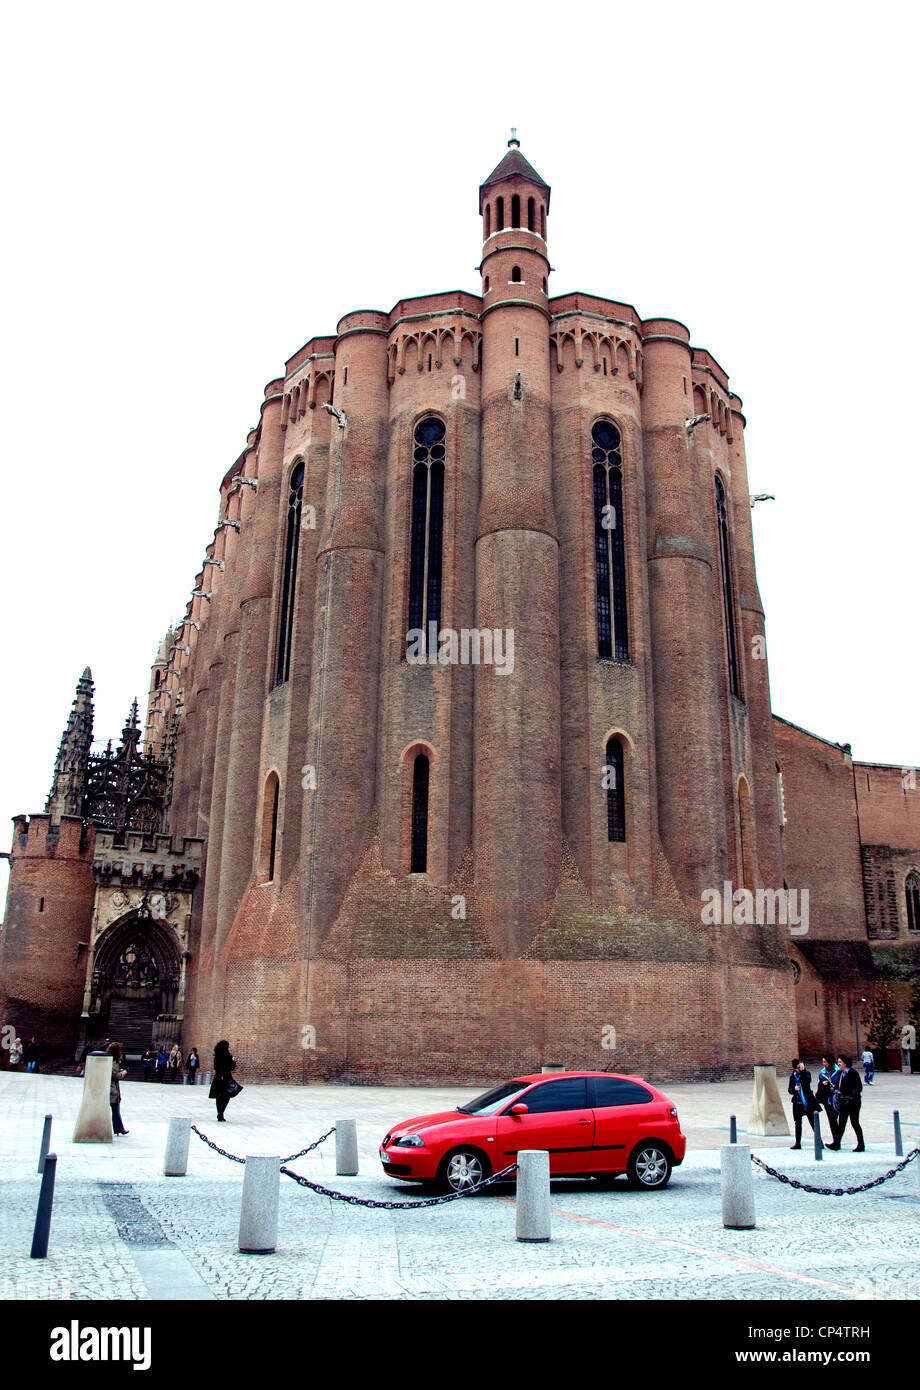 In medieval Albi, France, a small red car drives behind the city's vast brick cathedral providing captivating - Stock Image